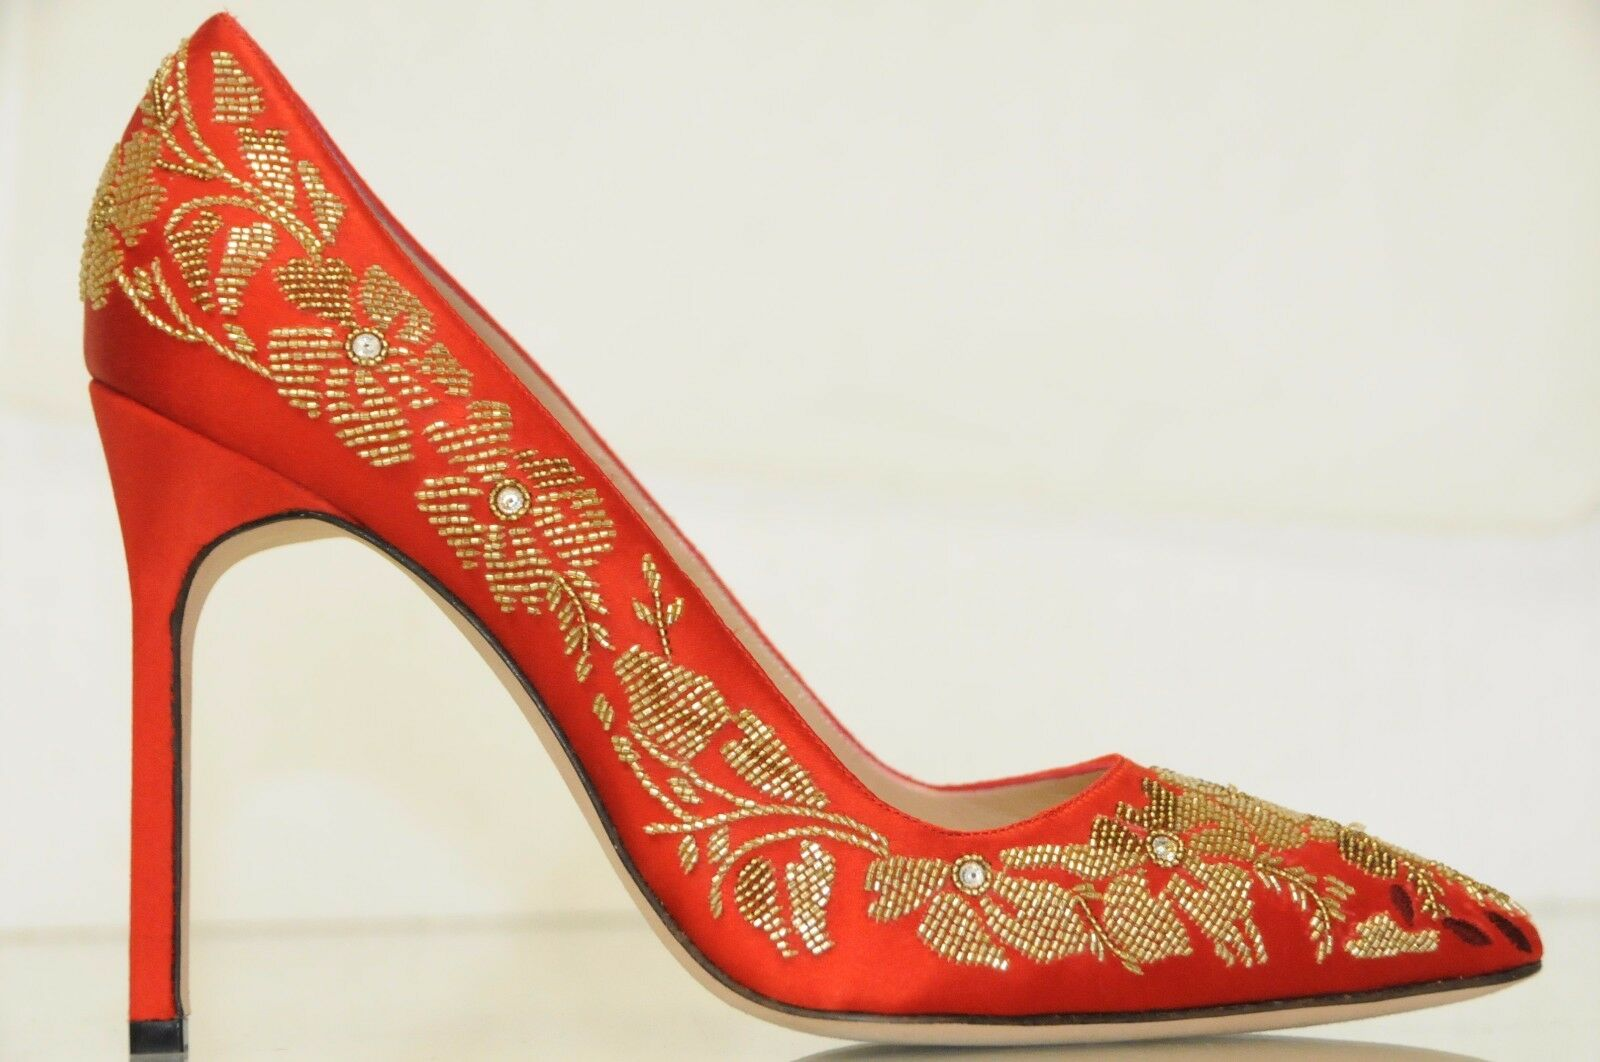 925 New Manolo Blahnik BB 105 Embroidery RED Satin shoes Pumps 38 40.5 wedding